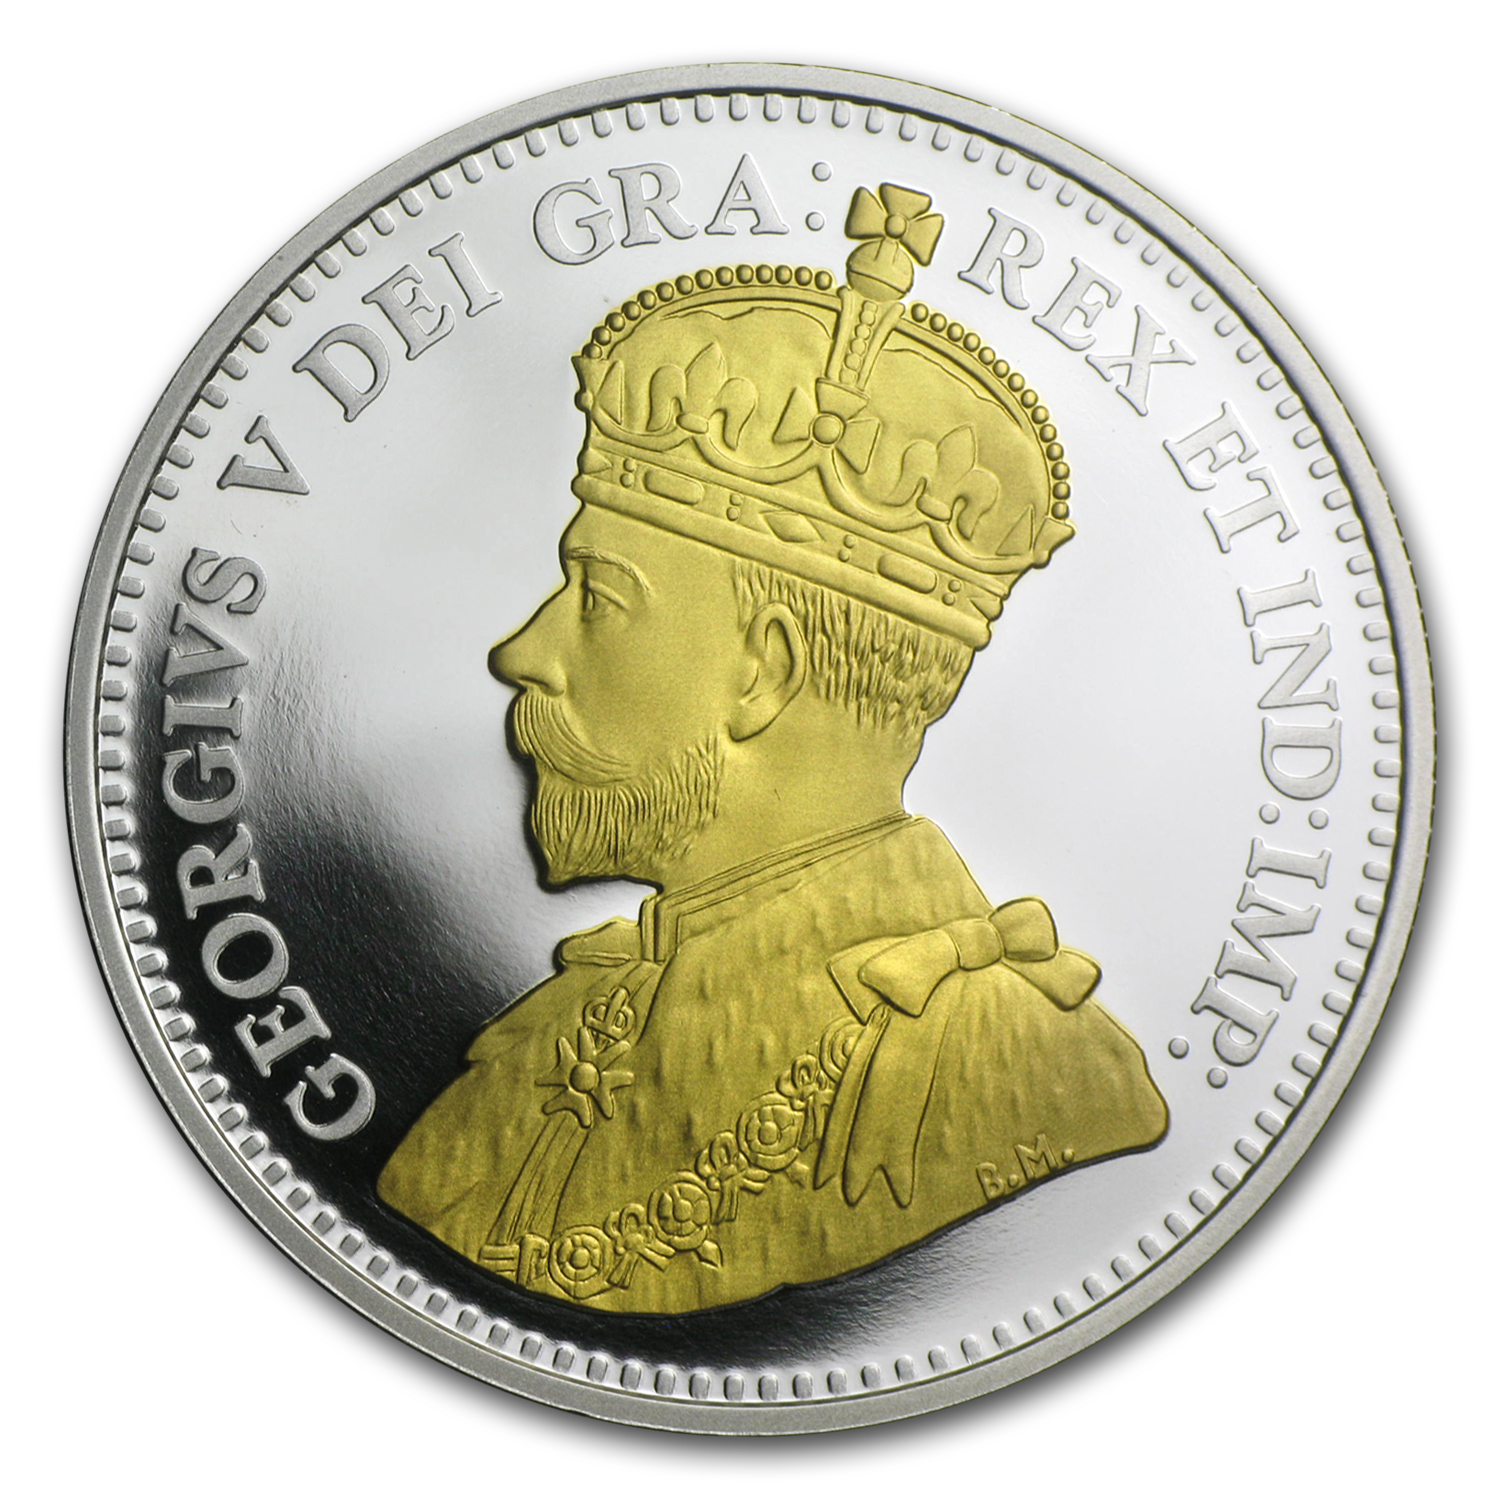 2015 Canada Silver Legacy of the Canadian Nickel (Crossed Maple)